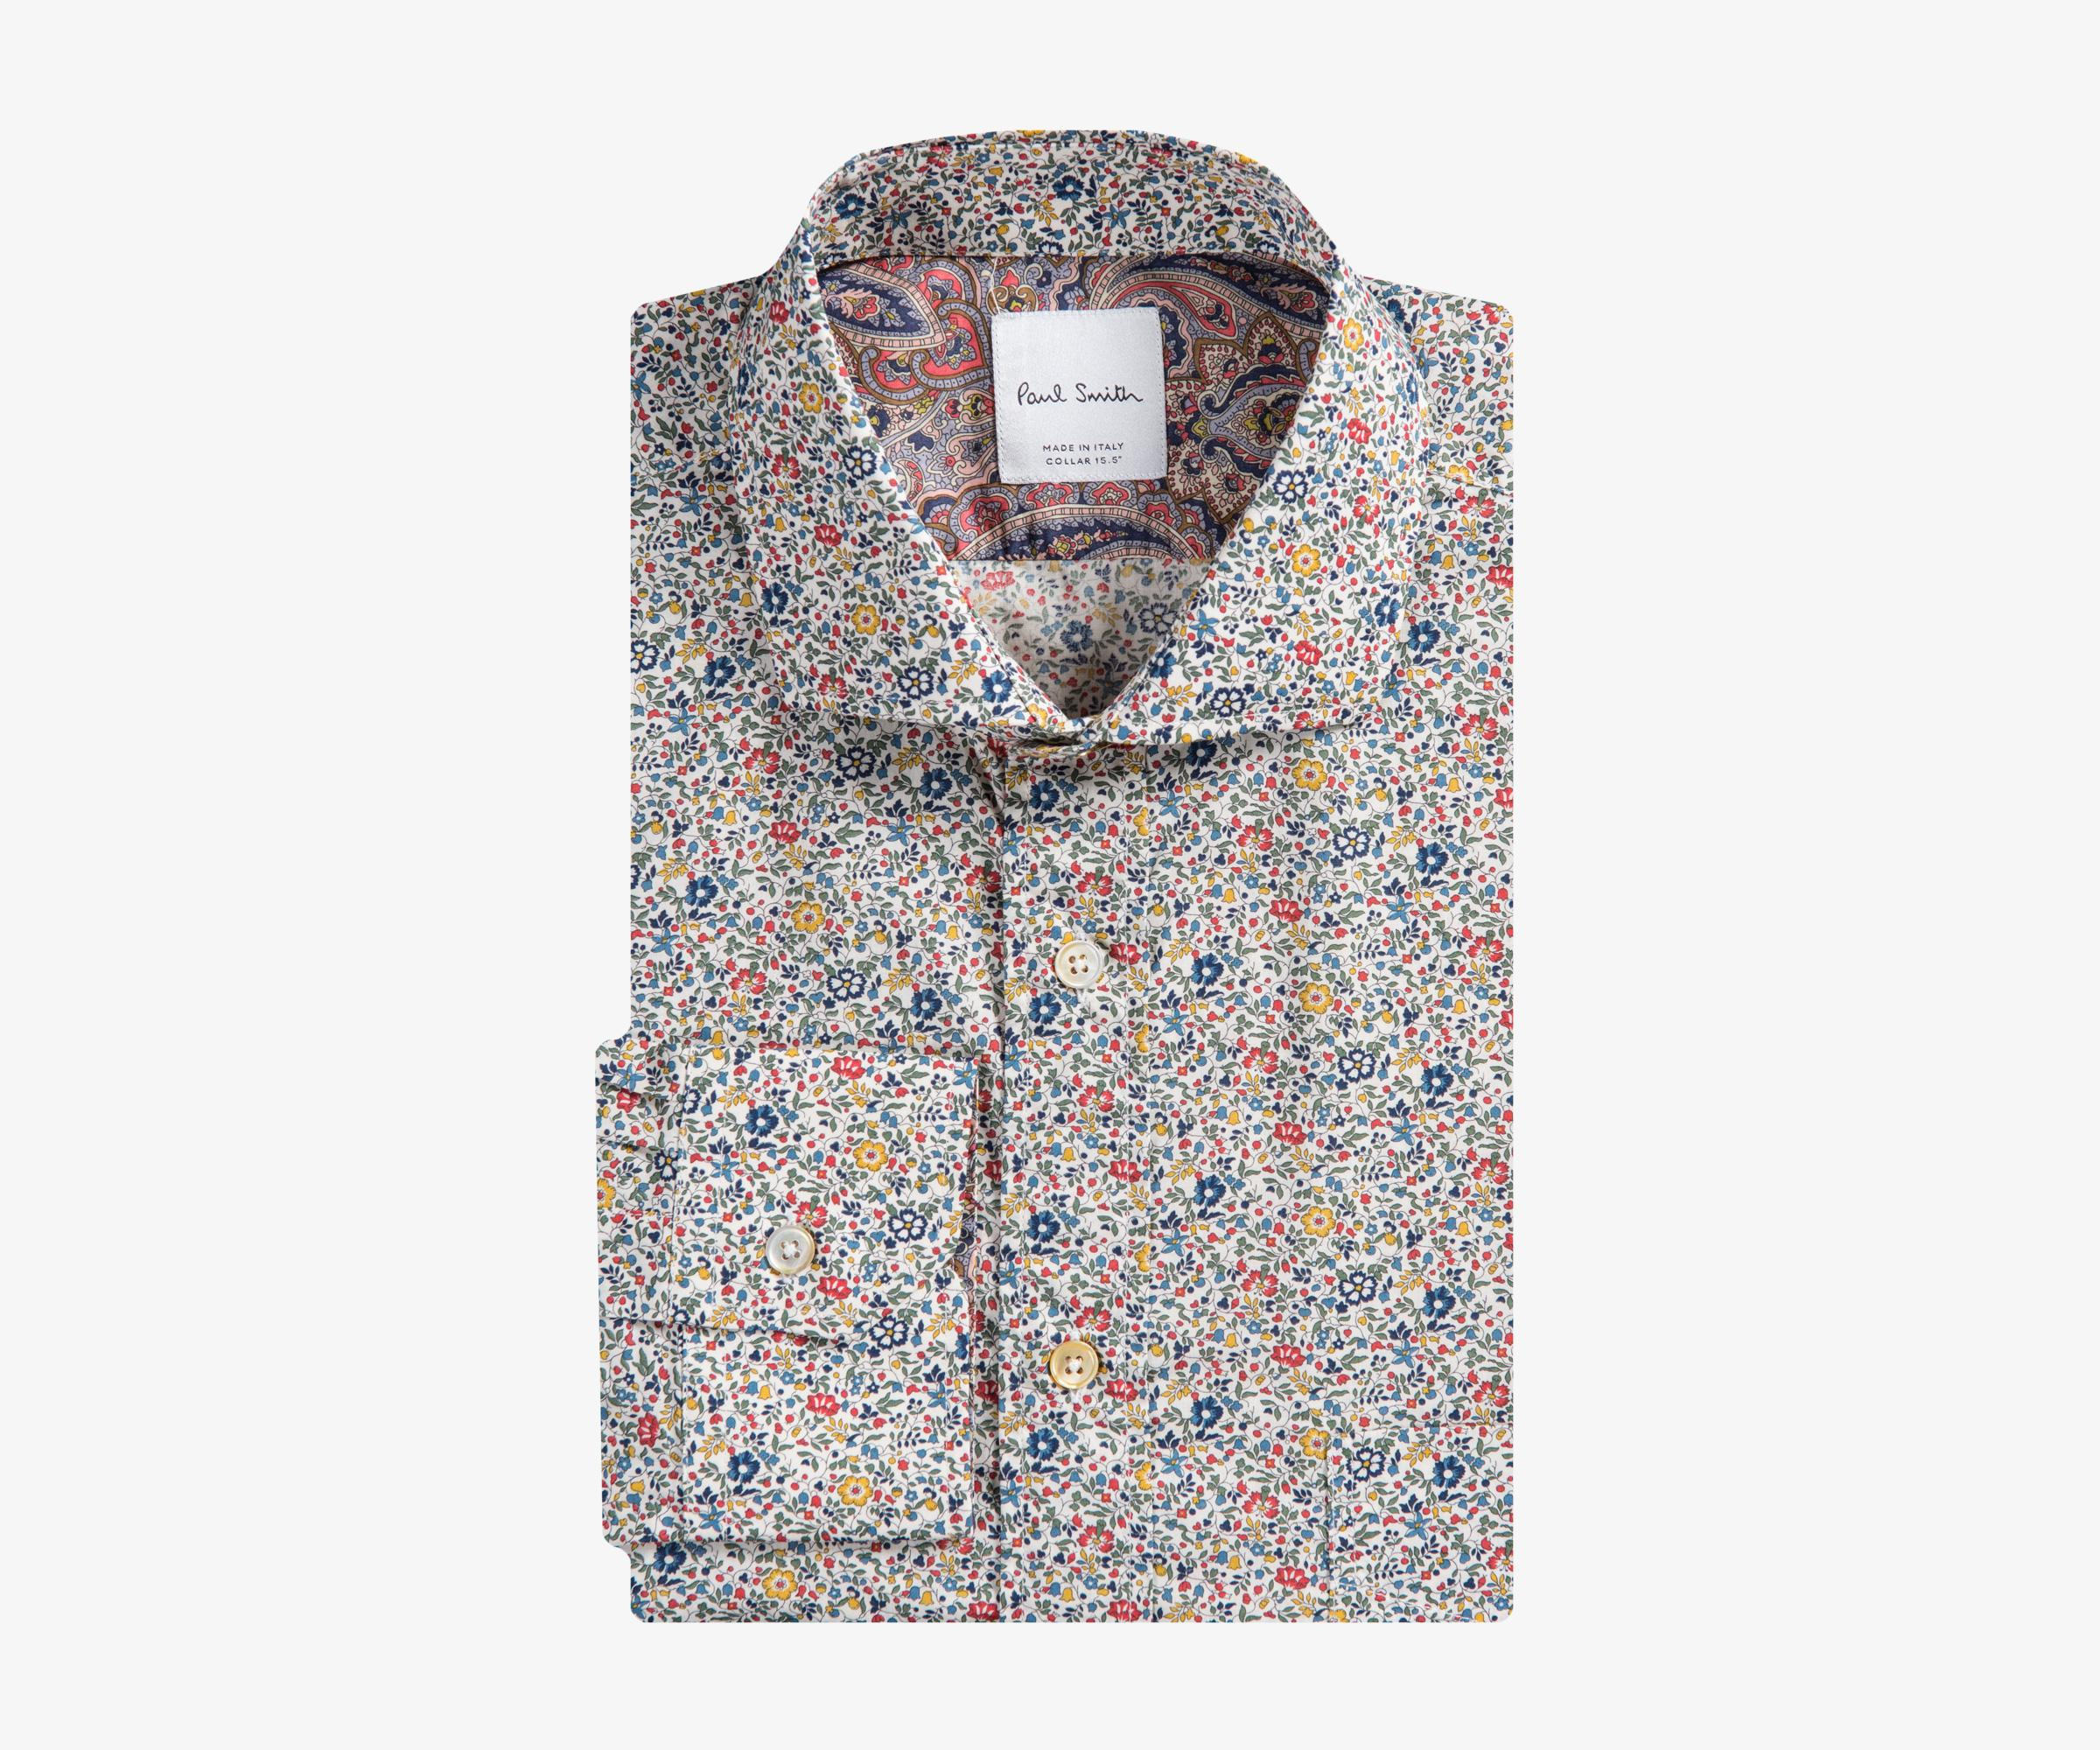 f175bfcb441 ... Floral  Liberty Print Shirt With Paisley Cuff Lining for. View  fullscreen